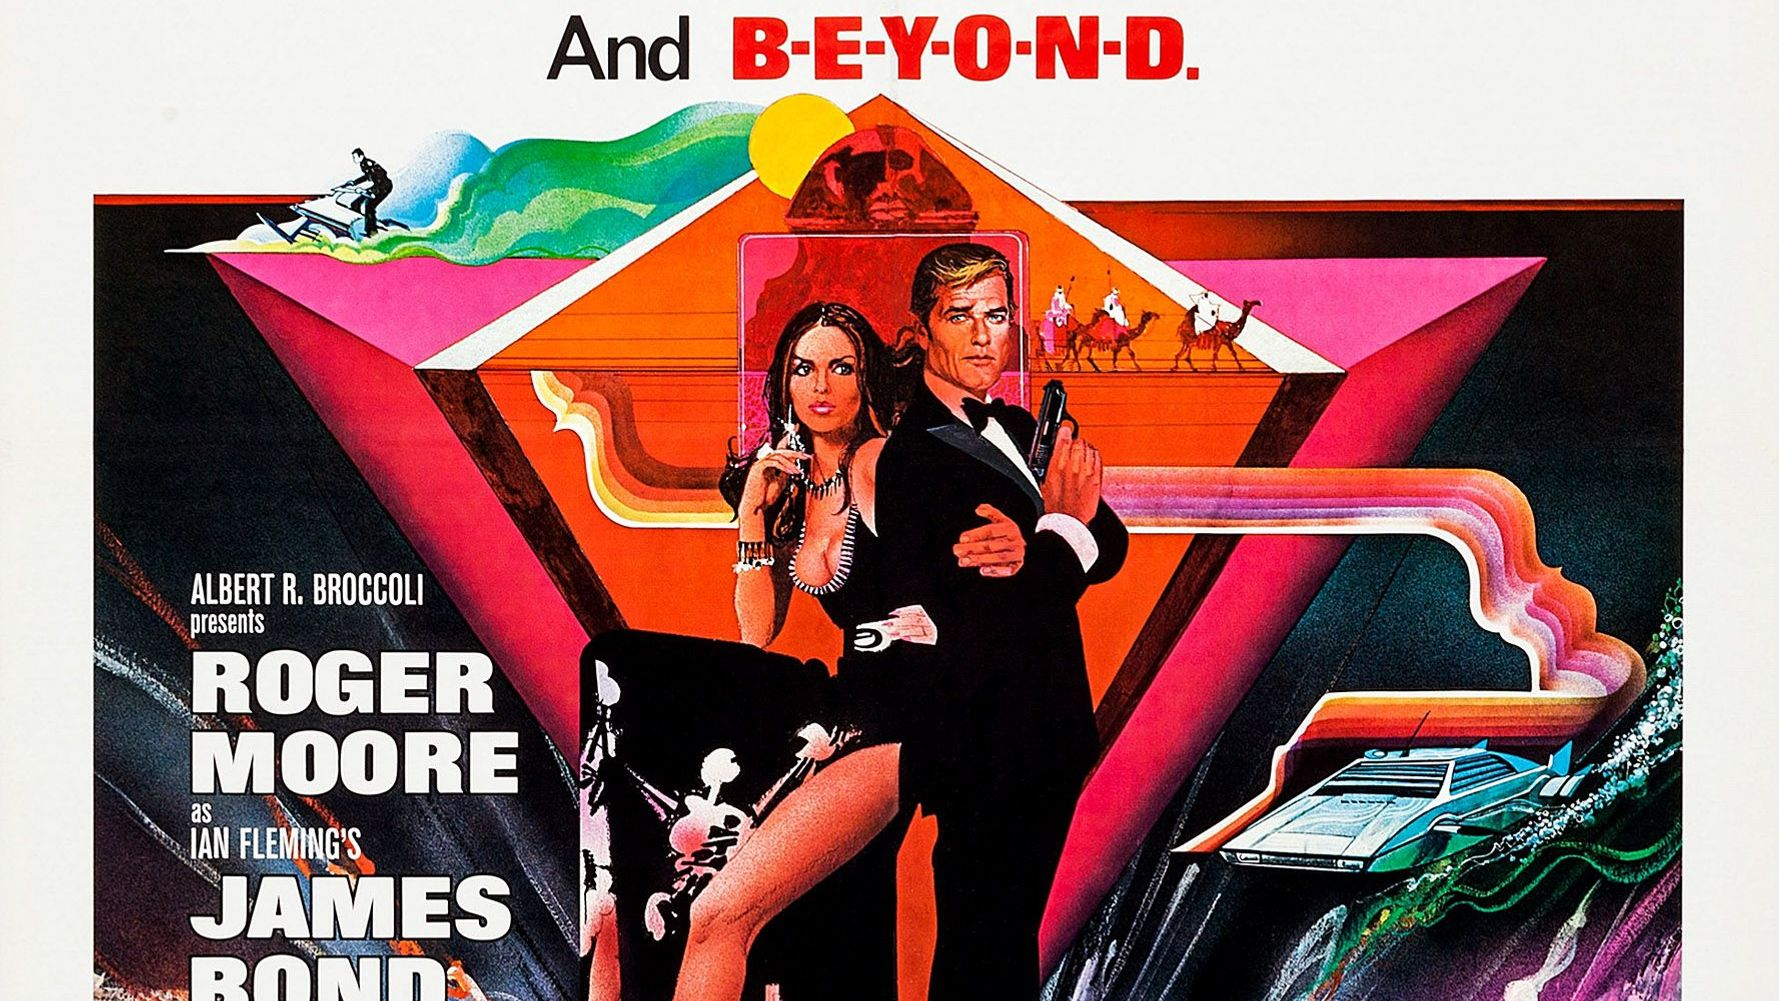 Bond Posters: The Spy Who Loved Me